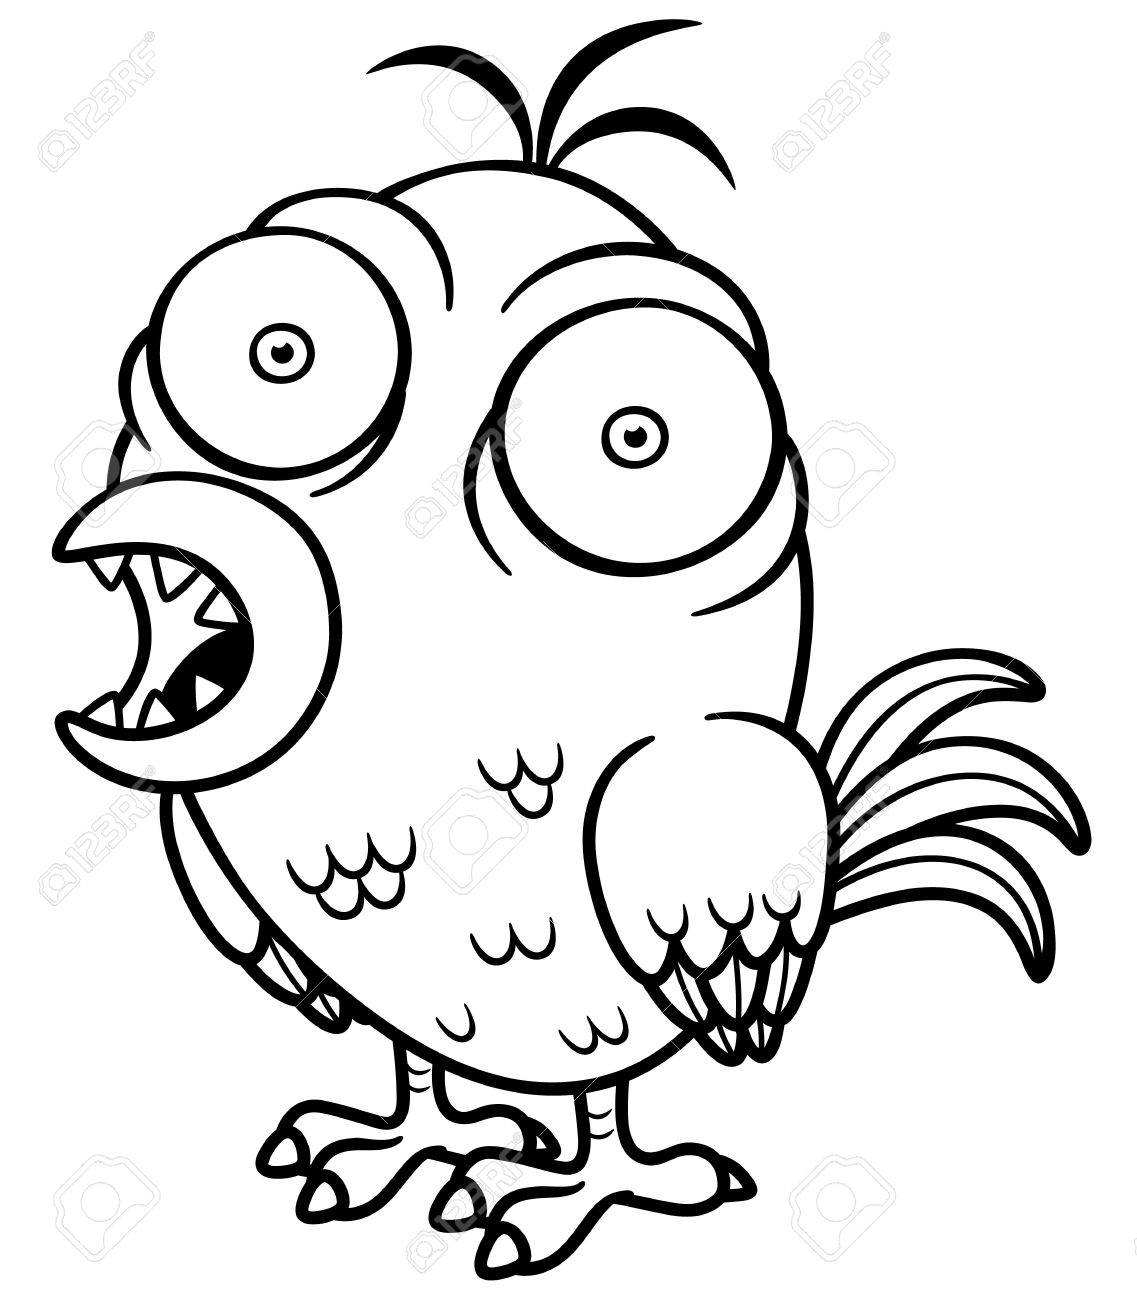 Vector Illustration Of Cartoon Bird - Coloring Book Royalty Free ...